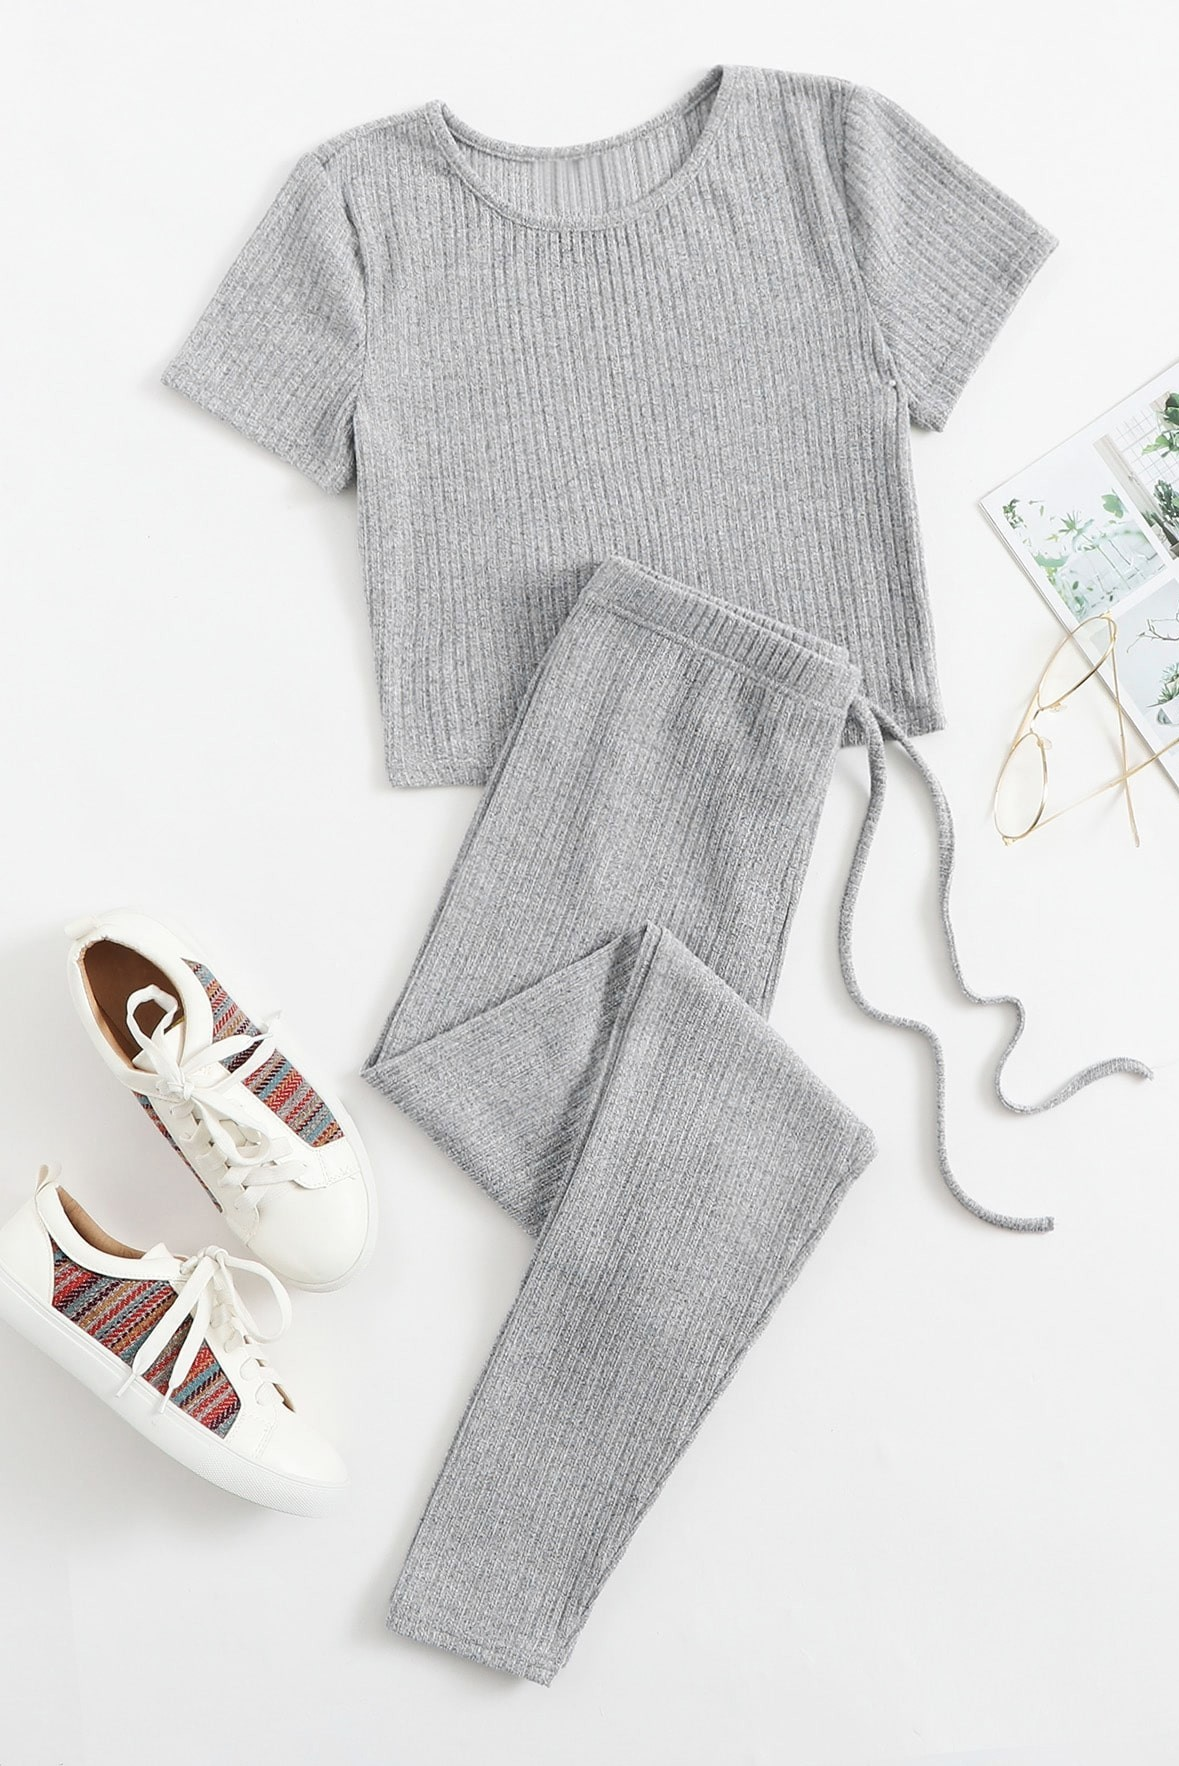 Set of two:- Solid rib knit tee & tie waist trouser grey